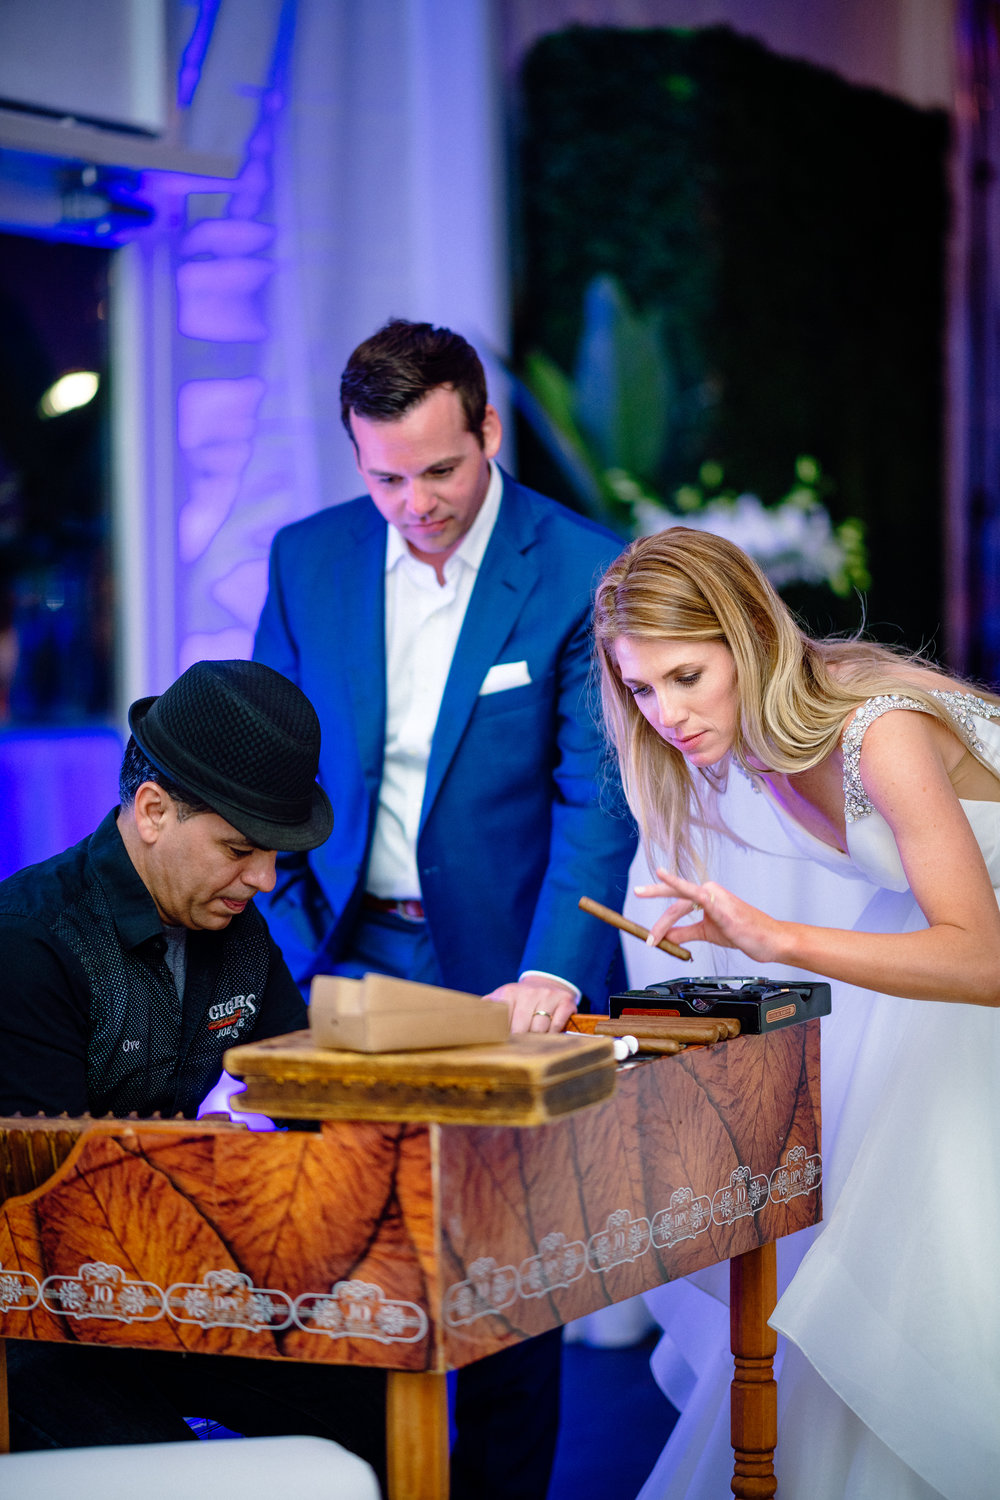 cigar roller wedding reception Florida Captiva.jpg